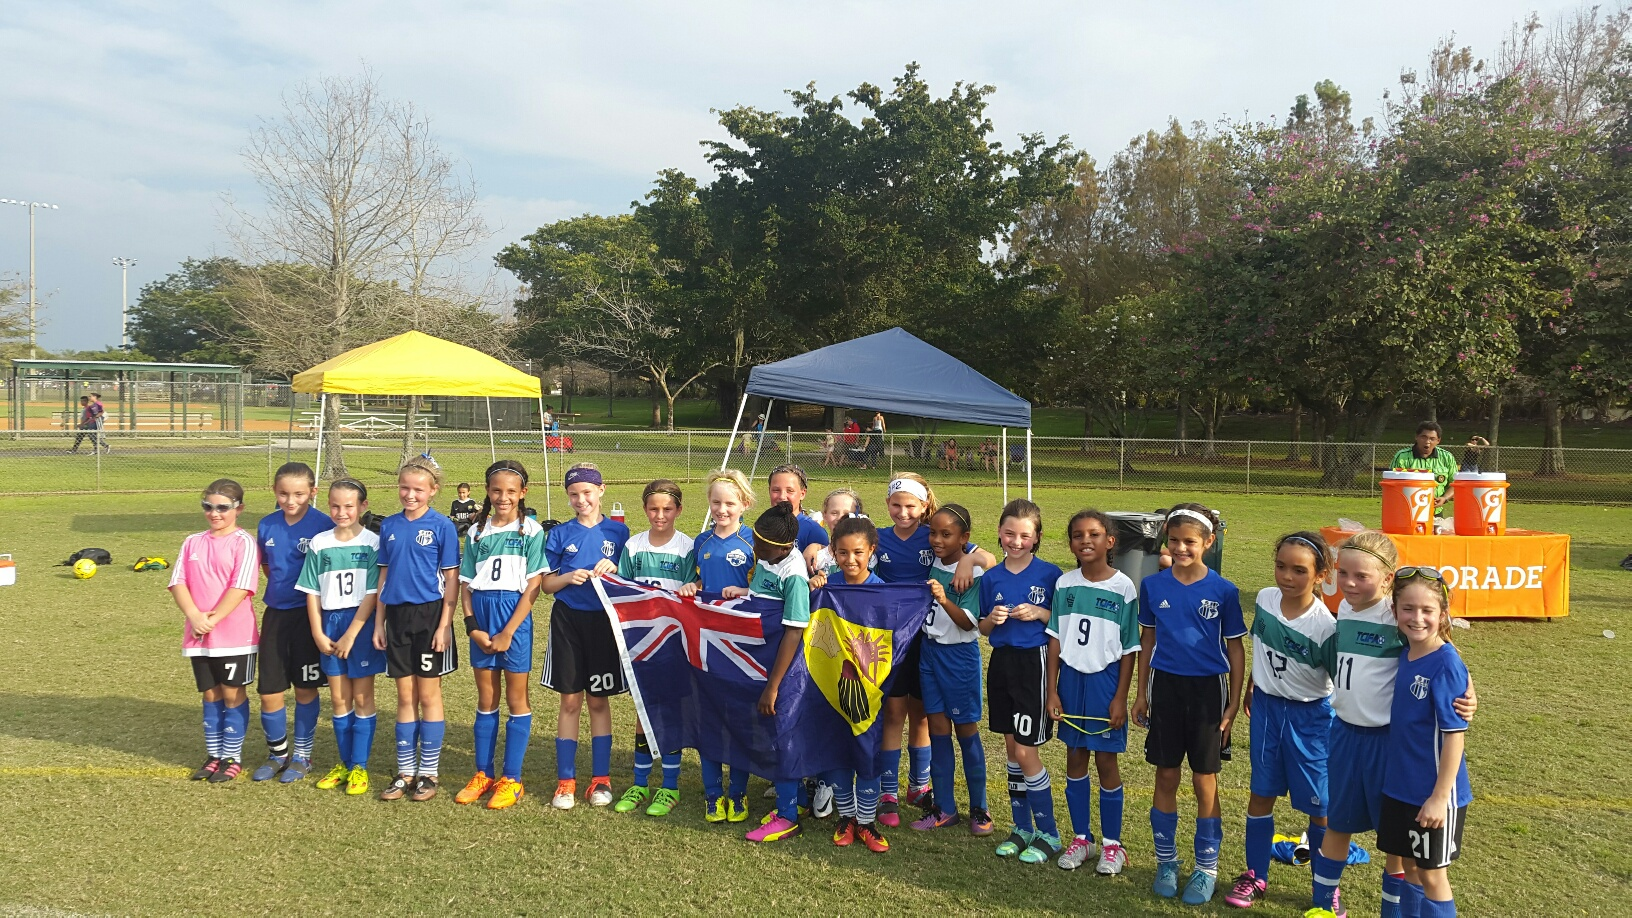 Girls under 10 team